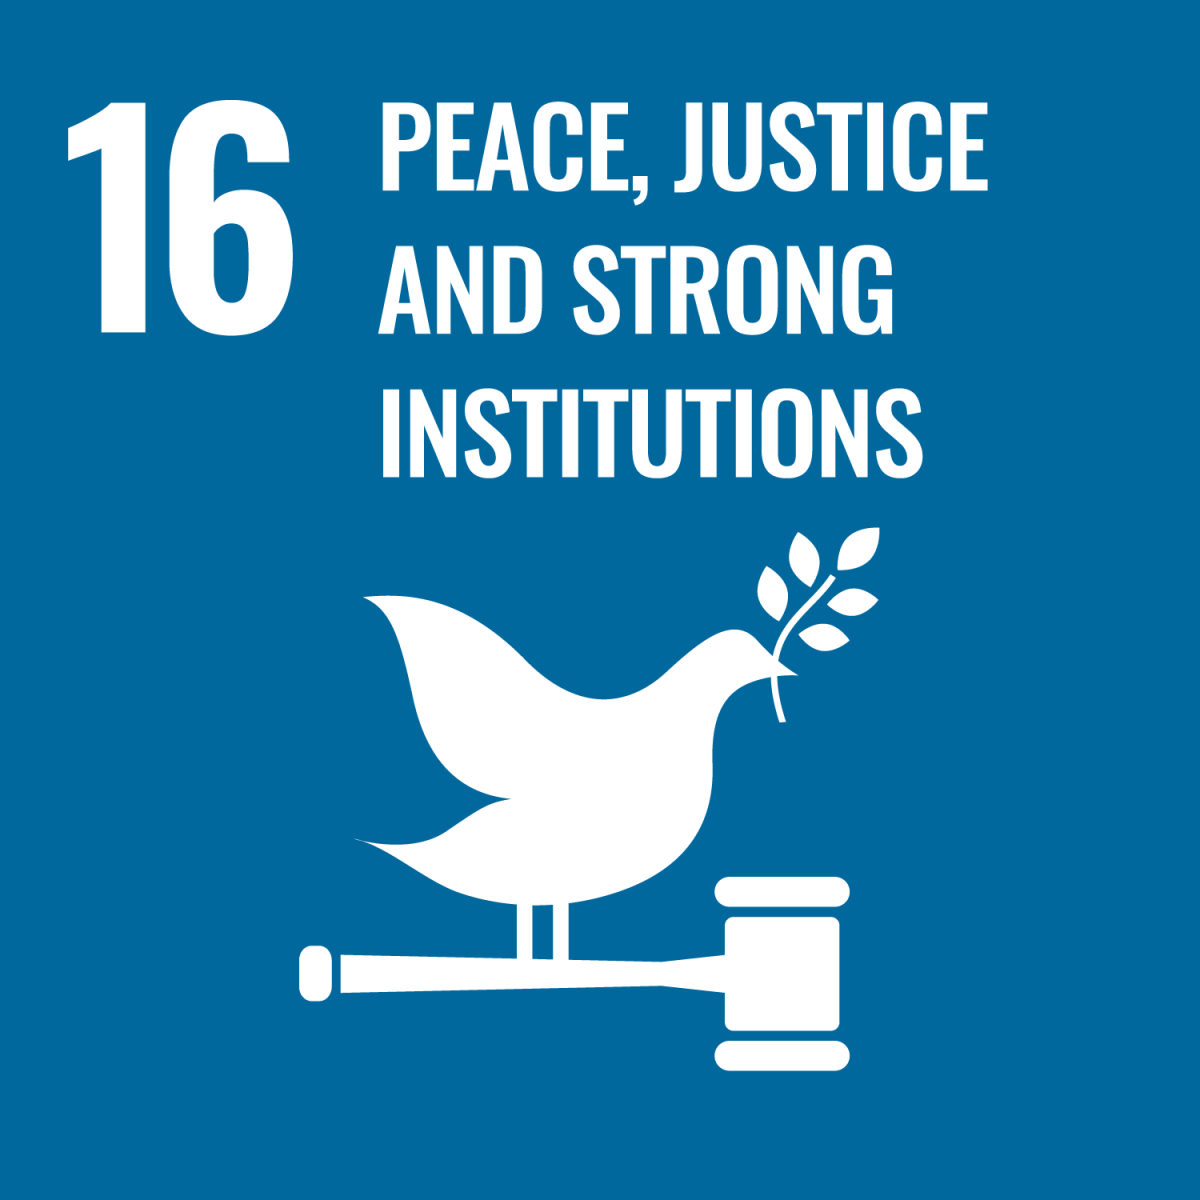 SDG 16 - Peace,Justice and Strong Institutions